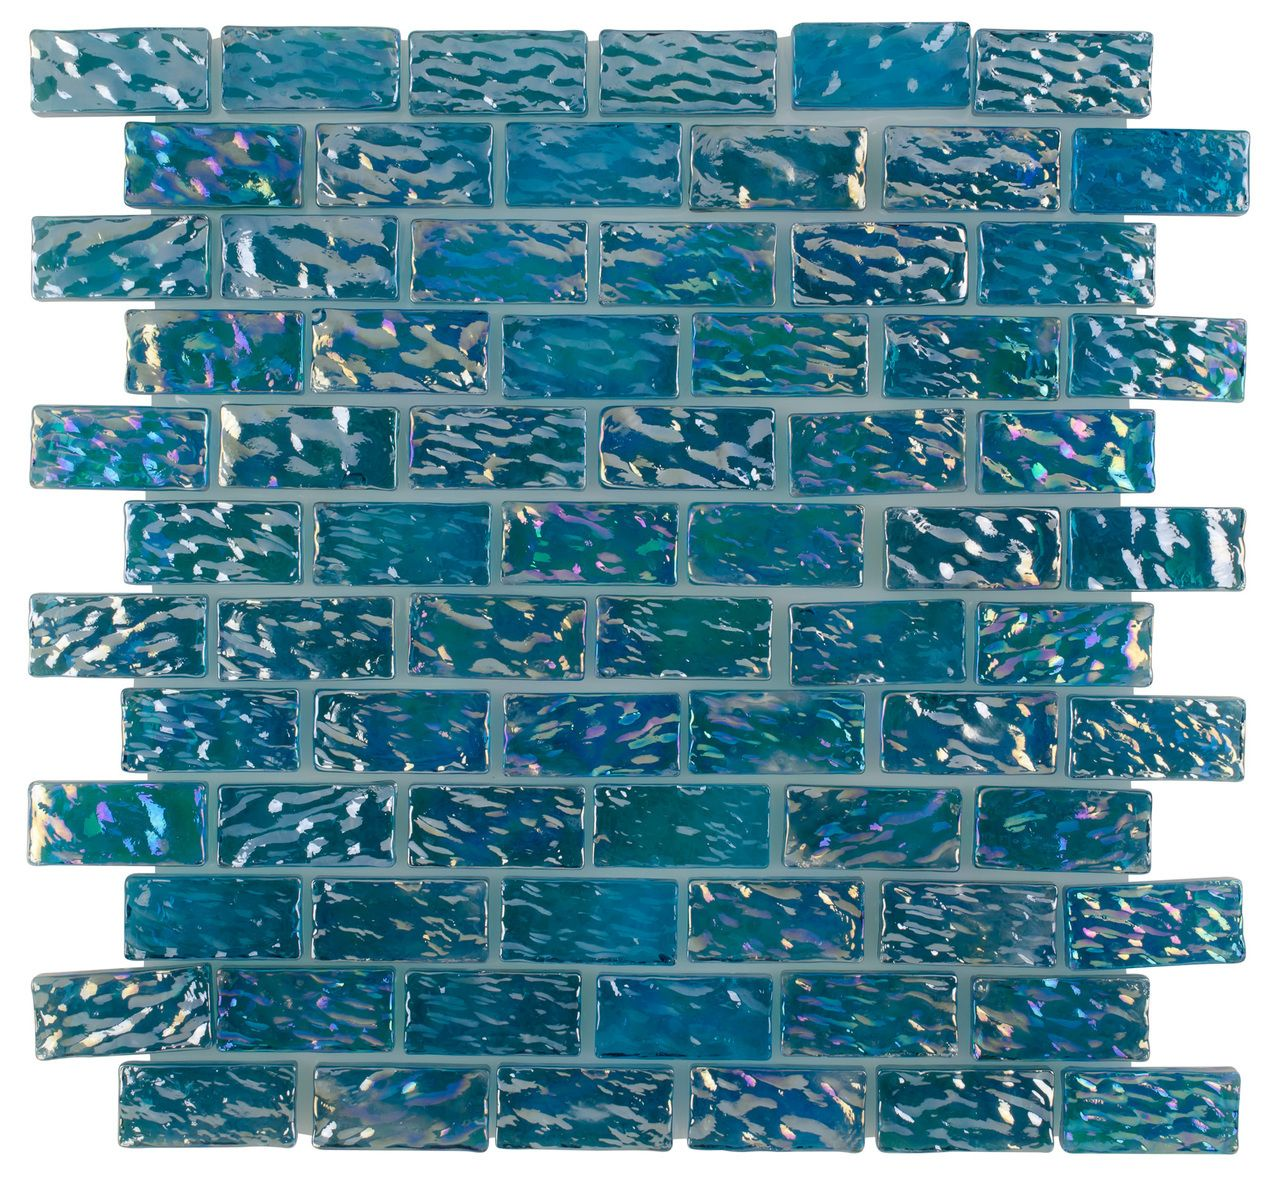 Iridescent Glass Pool Tile Ocean Turquoise 1x2 Mineral Tiles